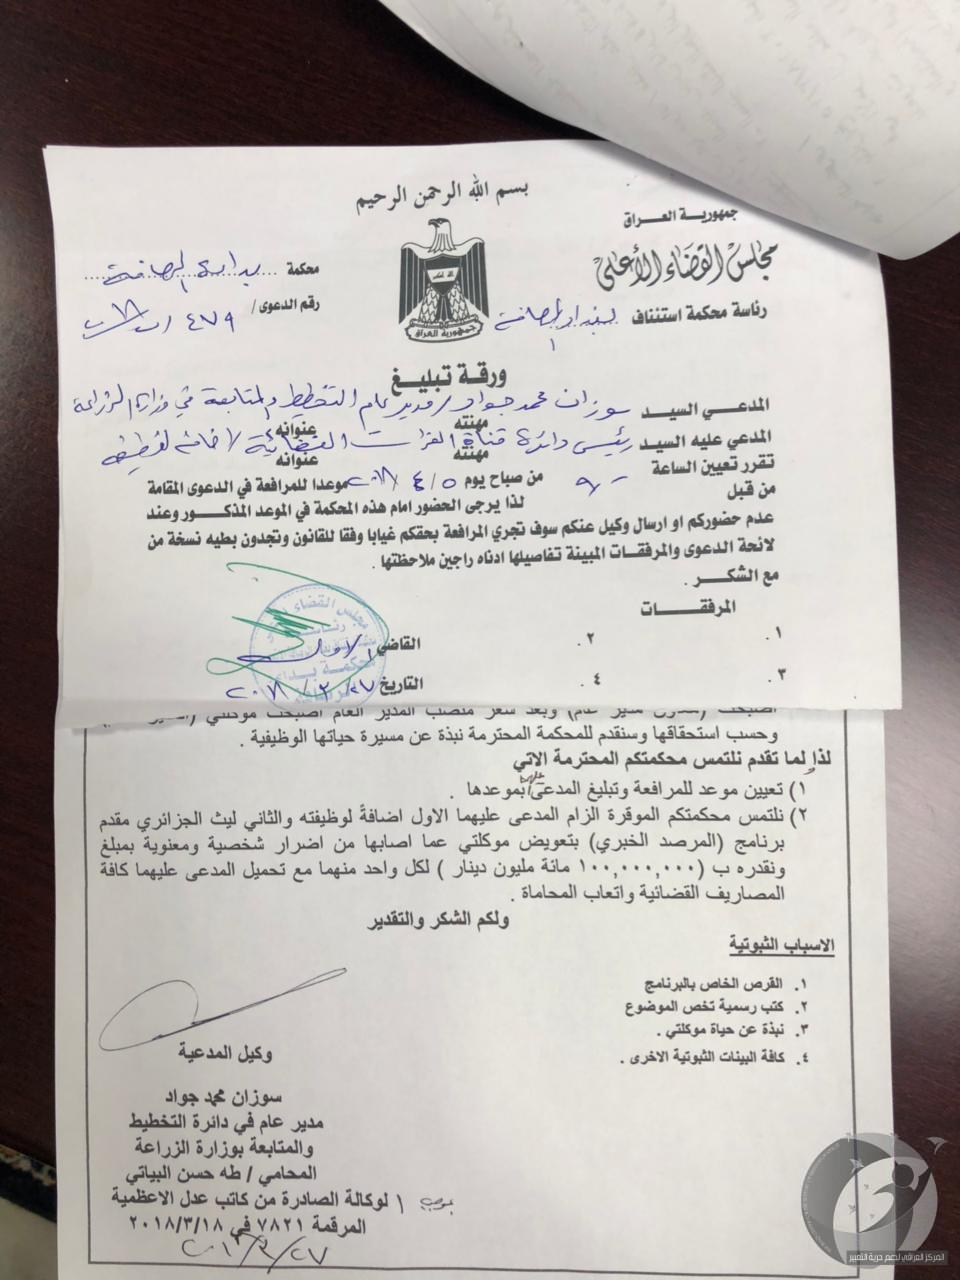 The Iraqi Center for Supporting Freedom of Speech provides a defense team to director of satellite channel and refuses to restrict the work of journalists